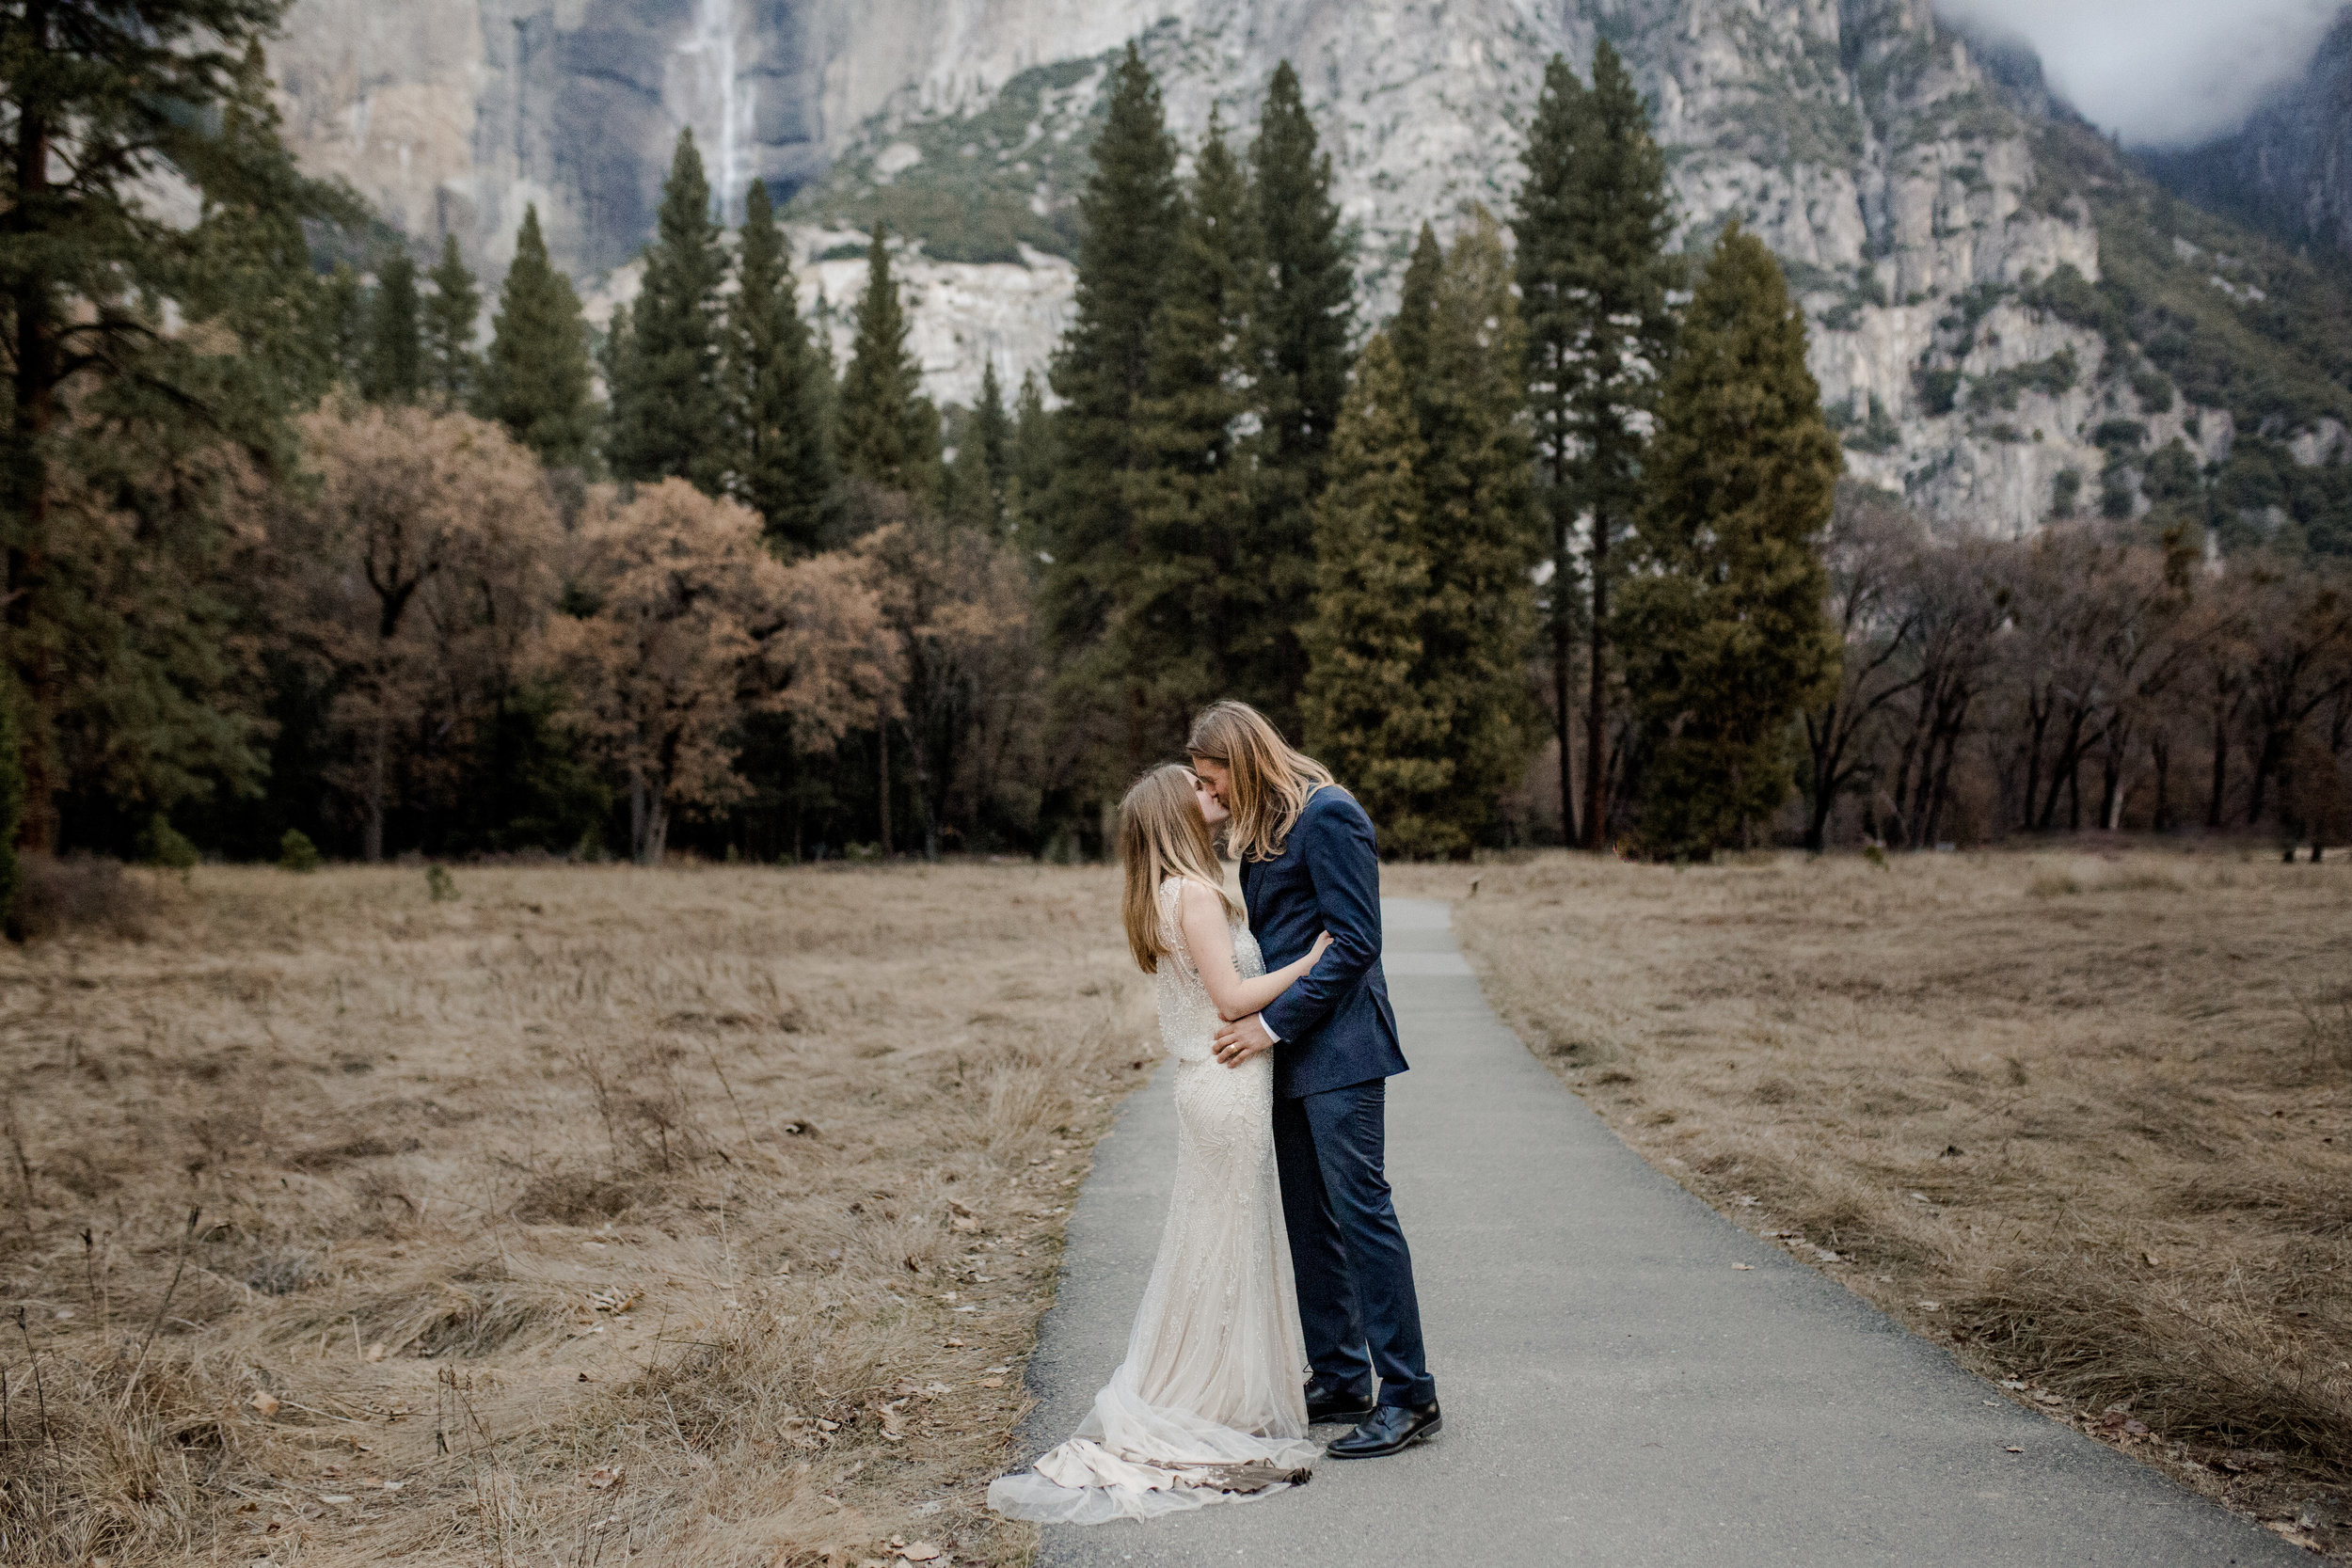 nicole-daacke-photography-yousemite-national-park-elopement-photographer-winter-cloud-moody-elope-inspiration-yosemite-valley-tunnel-view-winter-cloud-fog-weather-wedding-photos-28.jpg